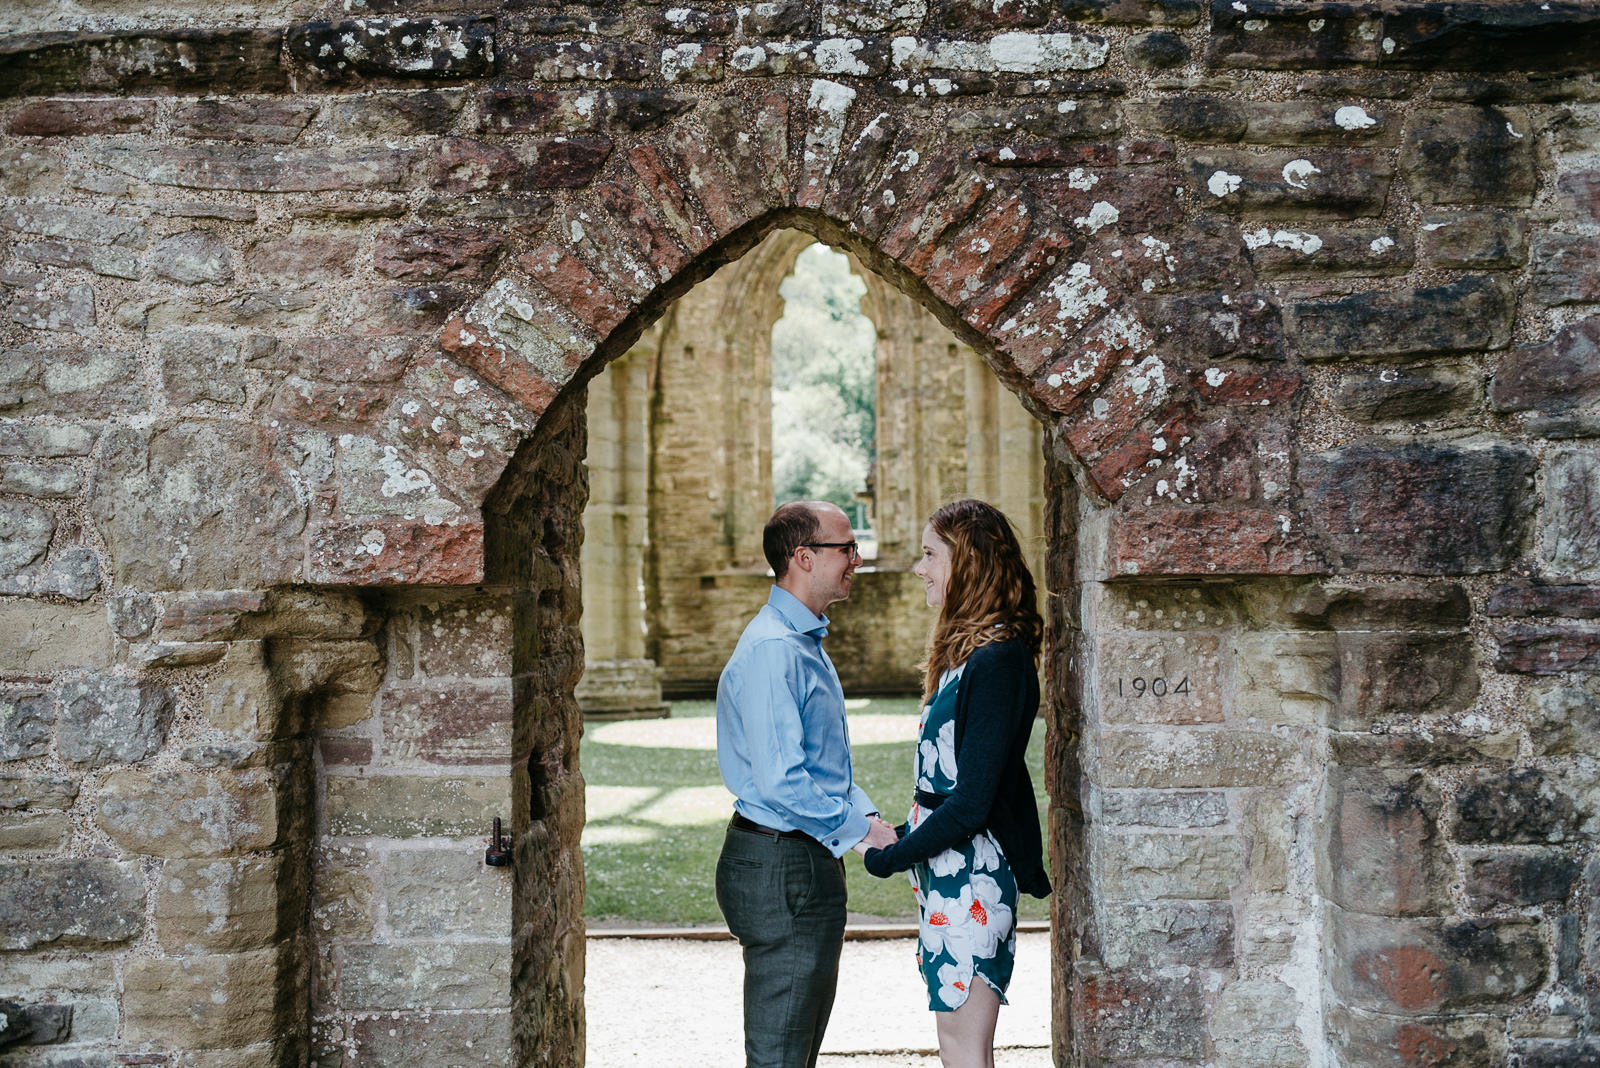 Bride and groom standing under arched doorway at Tintern Abbey